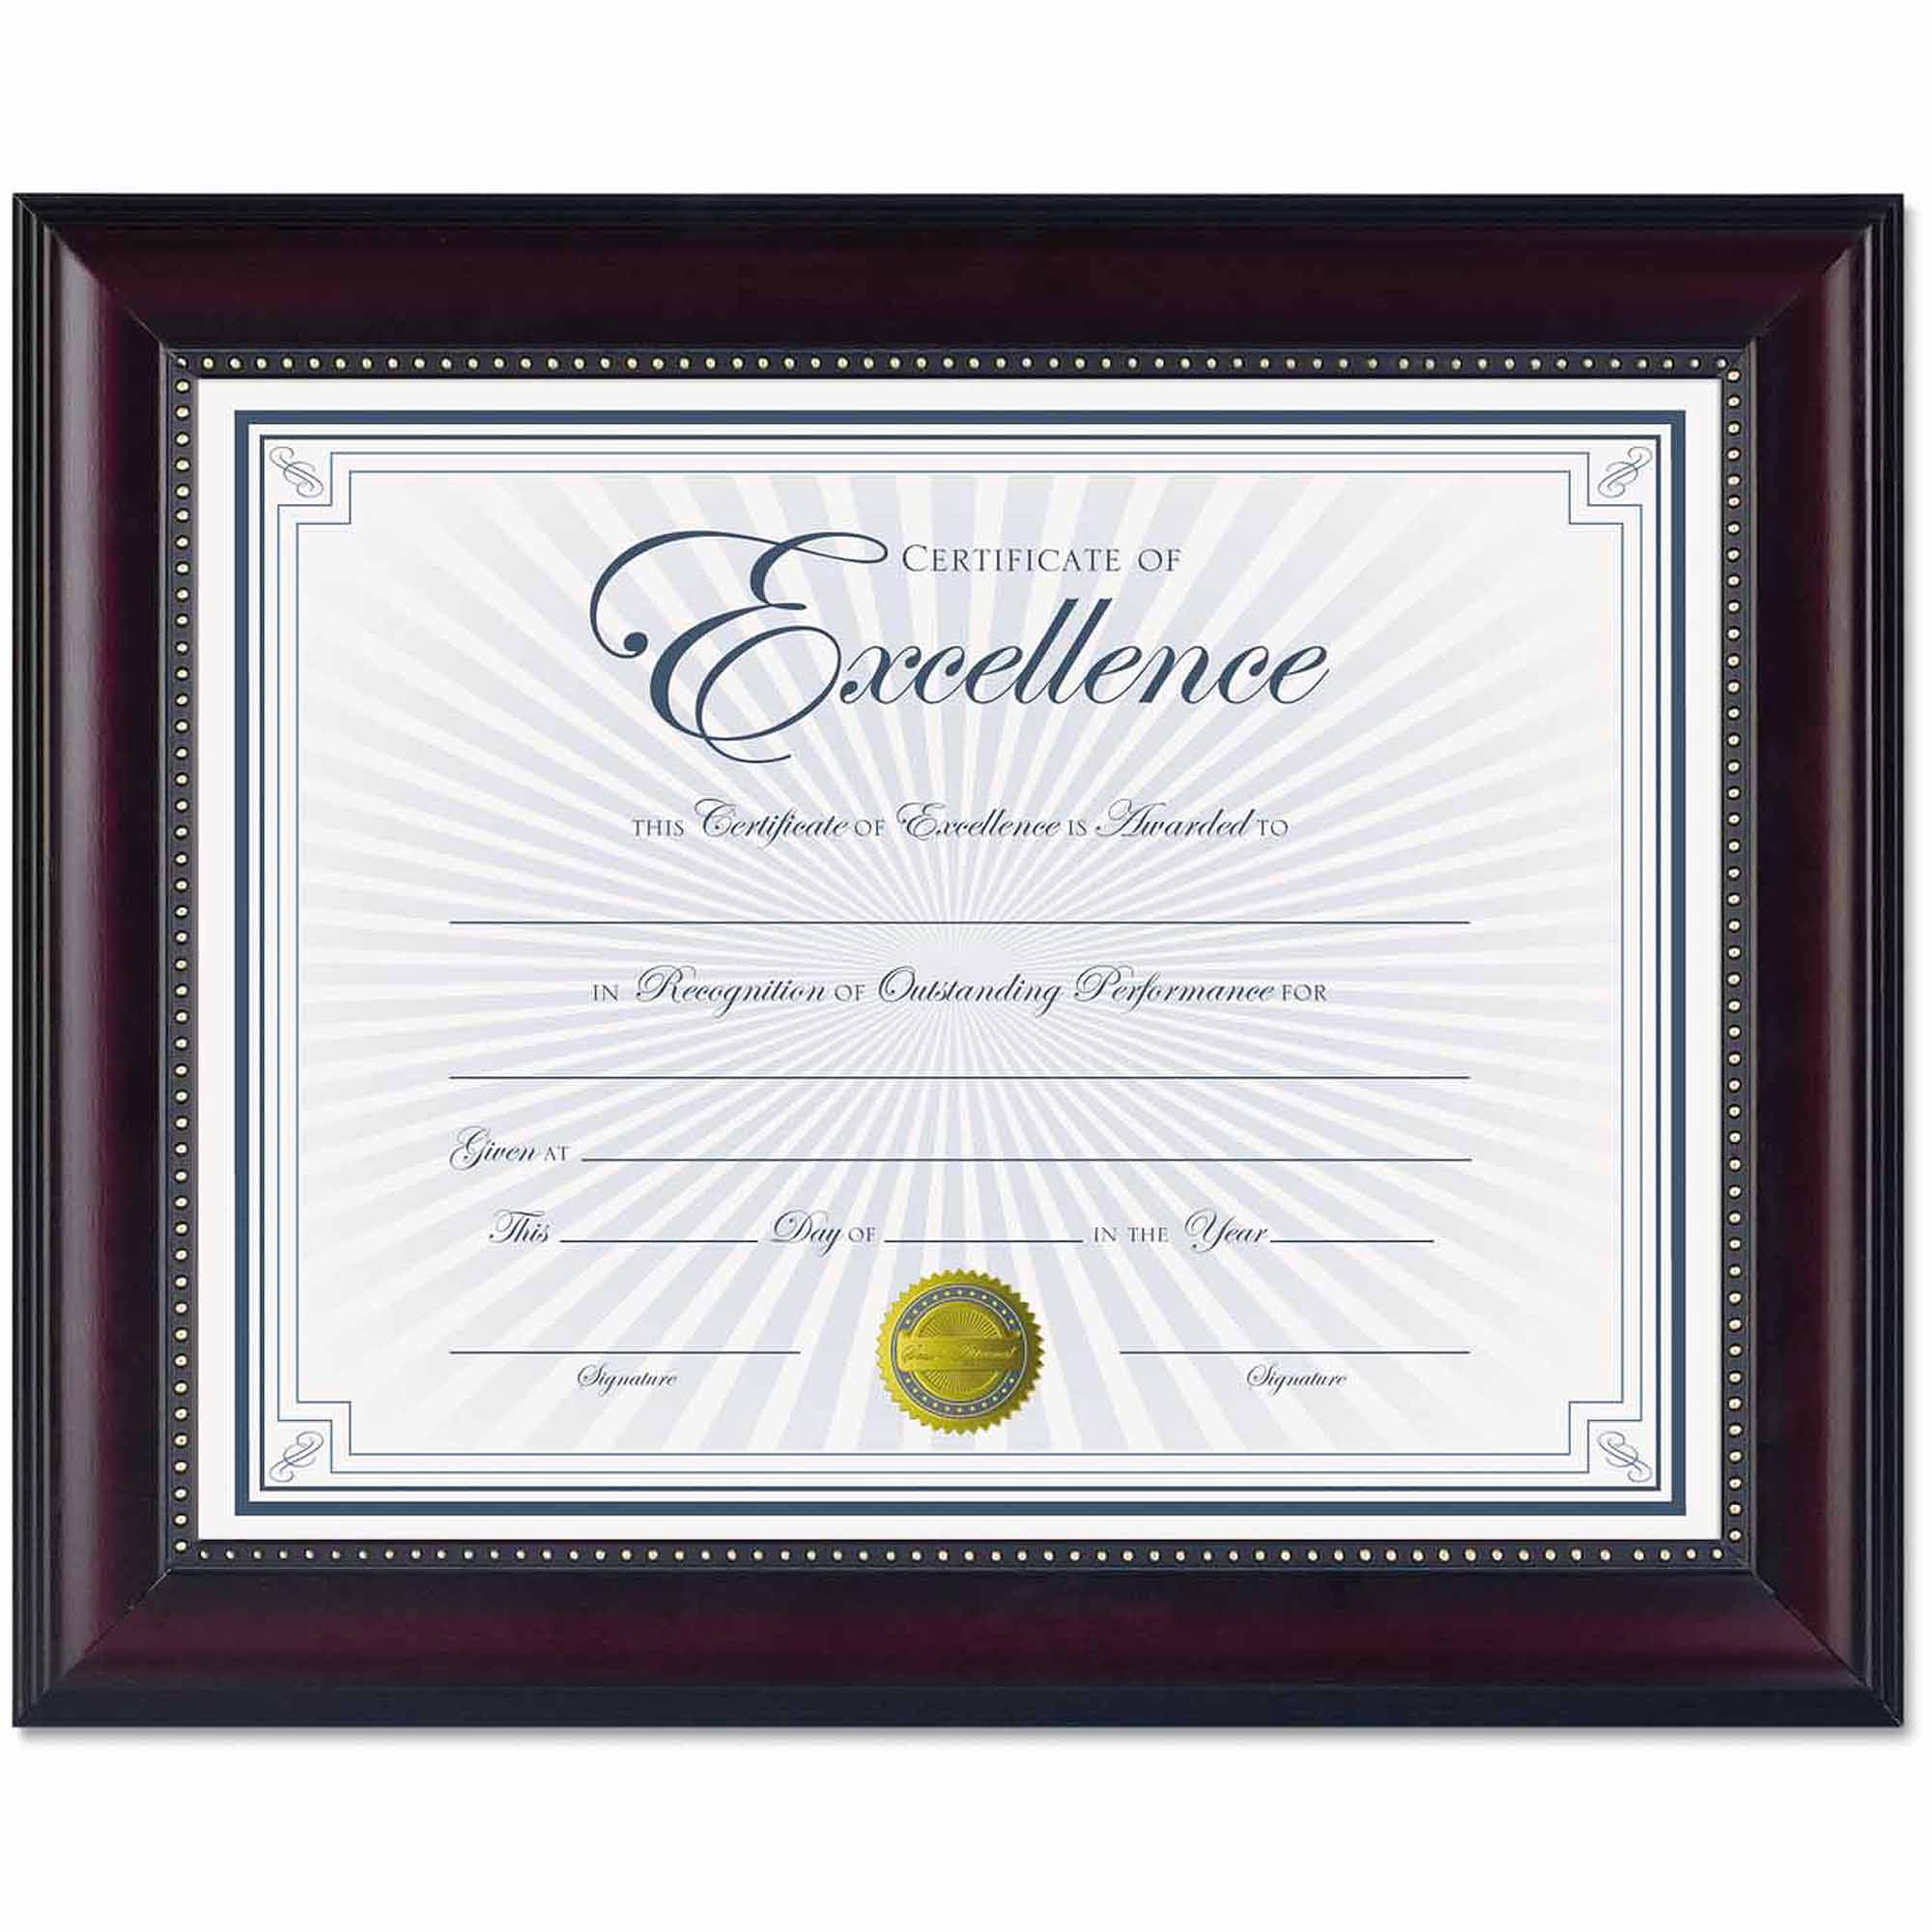 "DAX Prestige Document Frame, Rosewood/Black, Gold Accents, Certificate, 8-1/2"" x 11"""